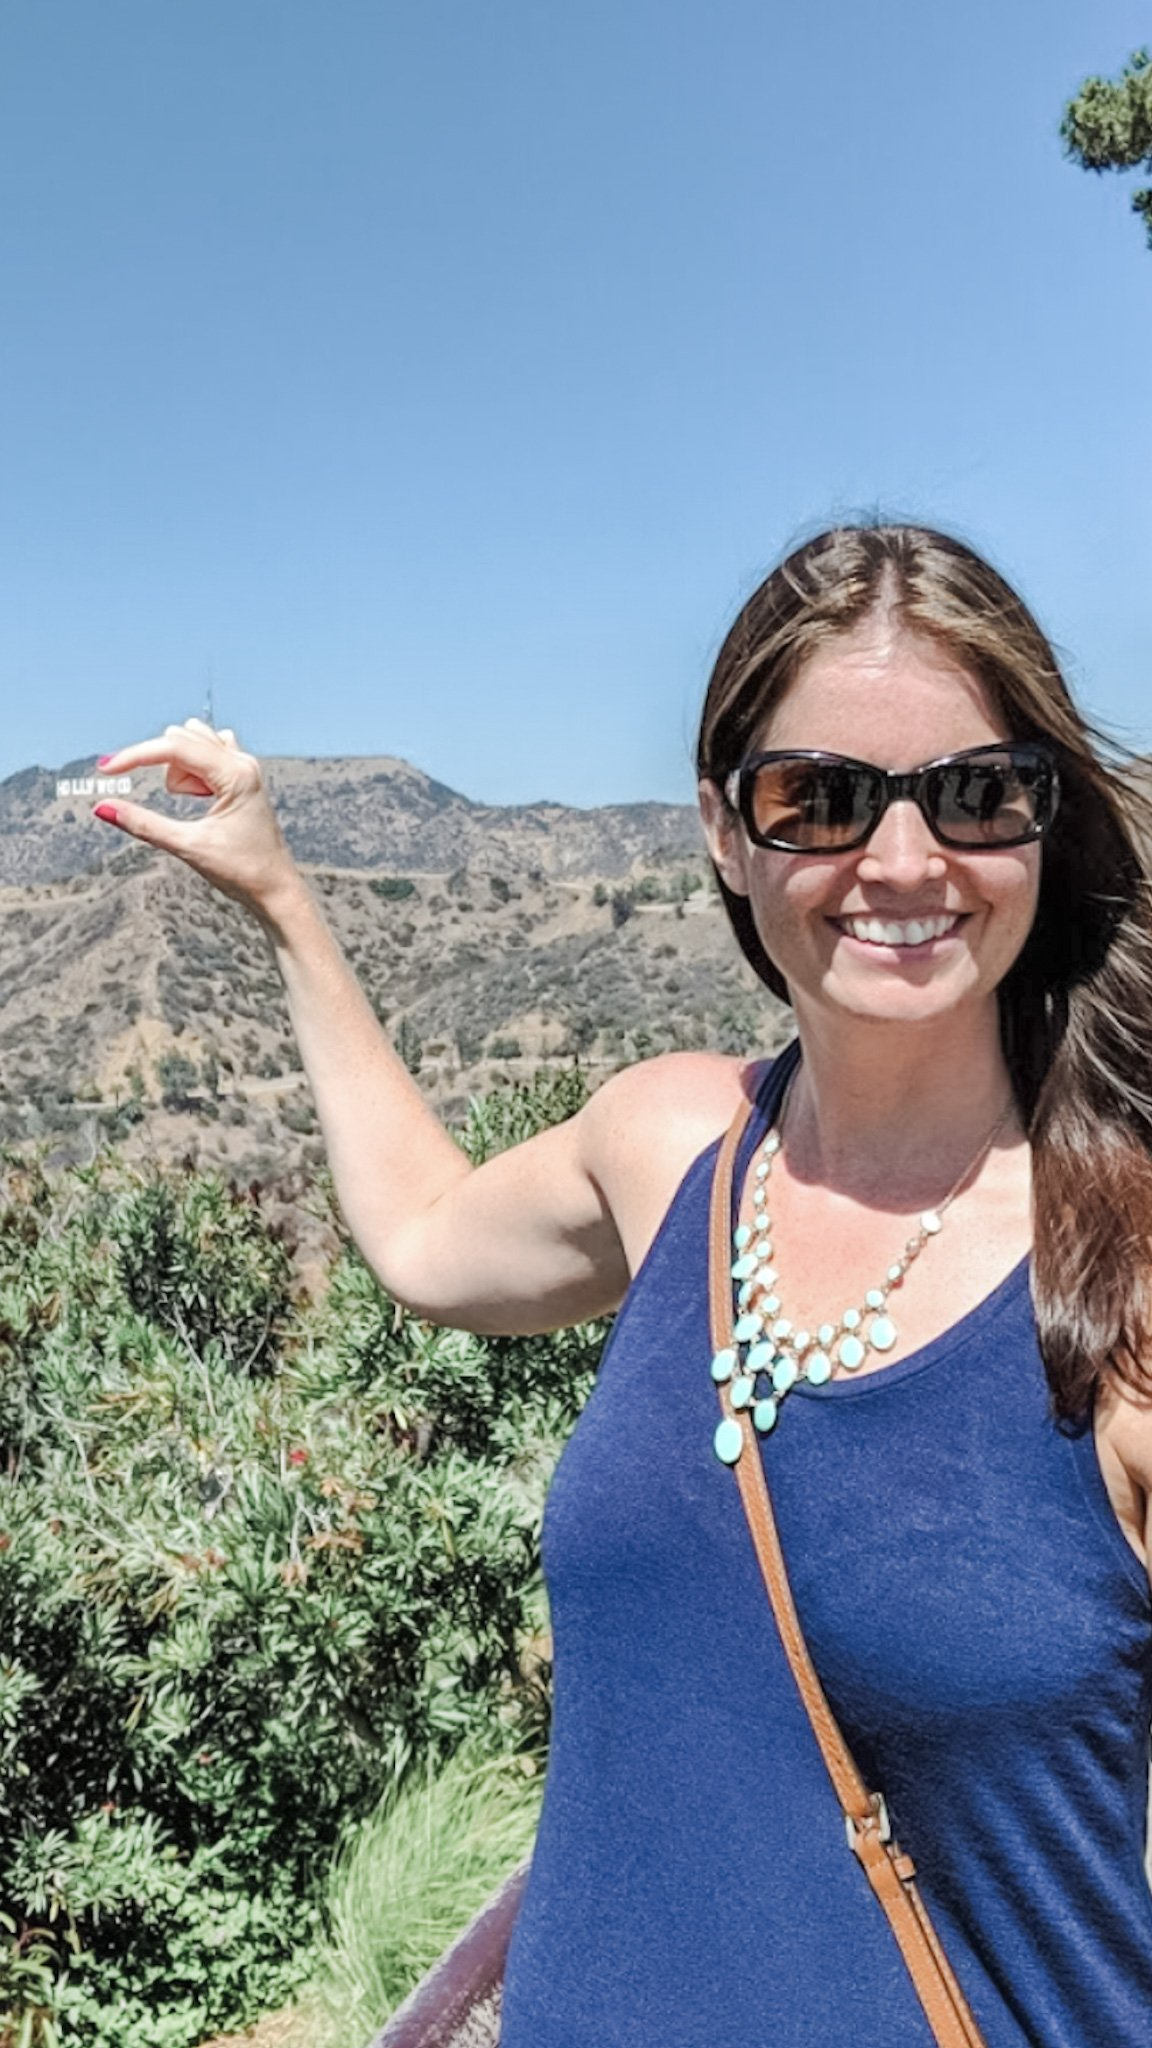 A must-see on any road trip through LA - the Hollywood sign. We took this photo from the Griffith Observatory.